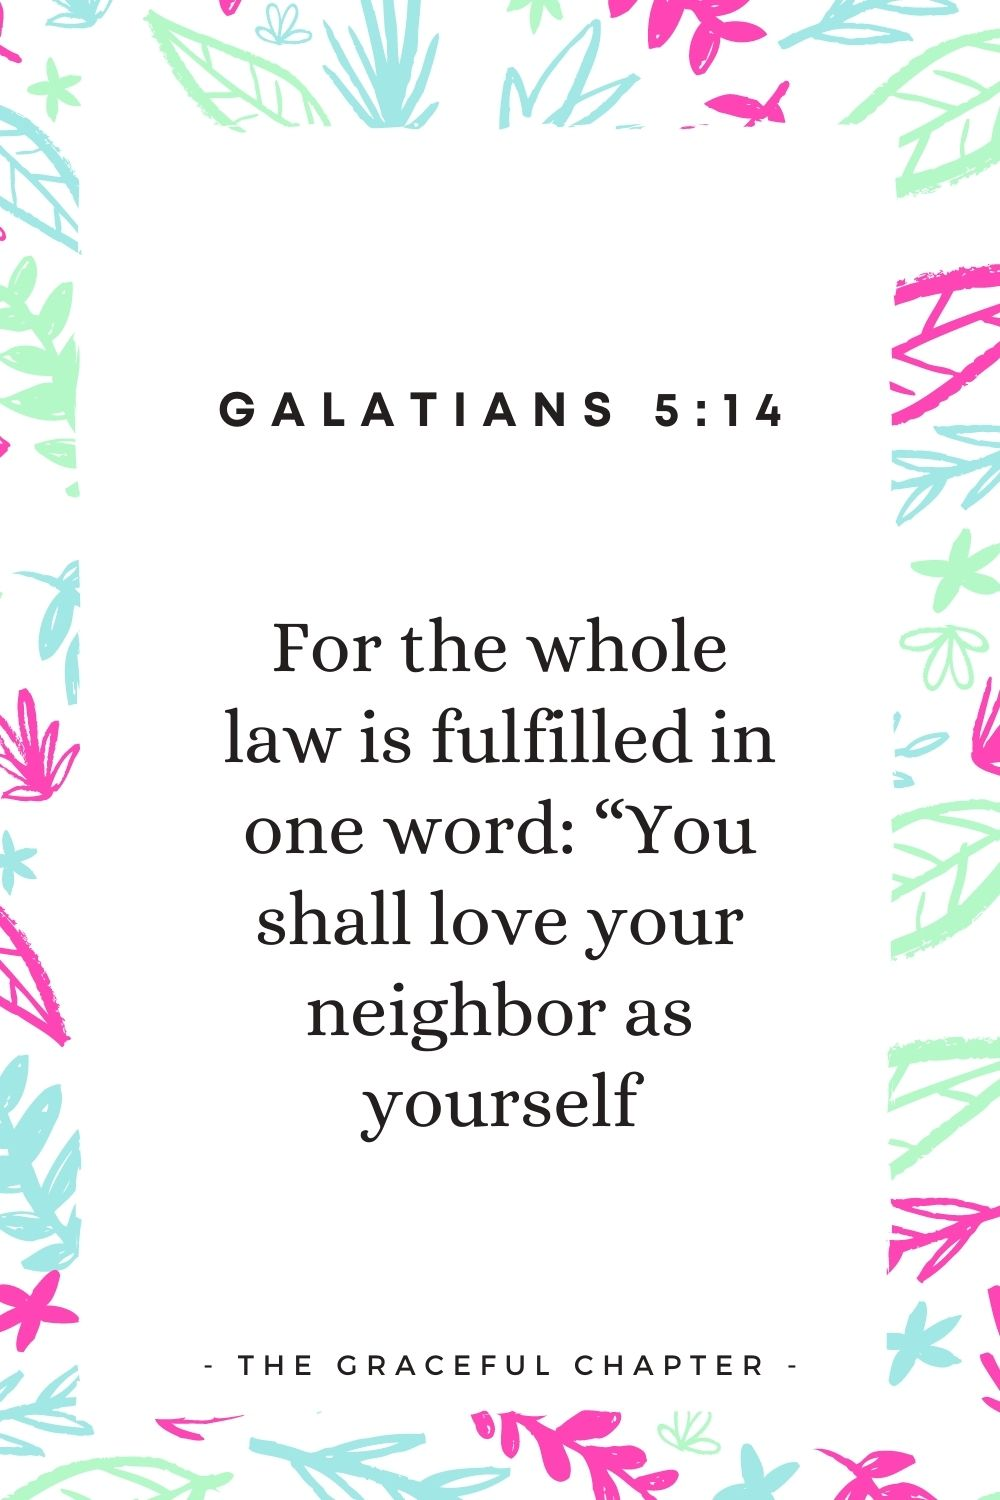 """For the whole law is fulfilled in one word: """"You shall love your neighbor as yourself Galatians 5:14"""